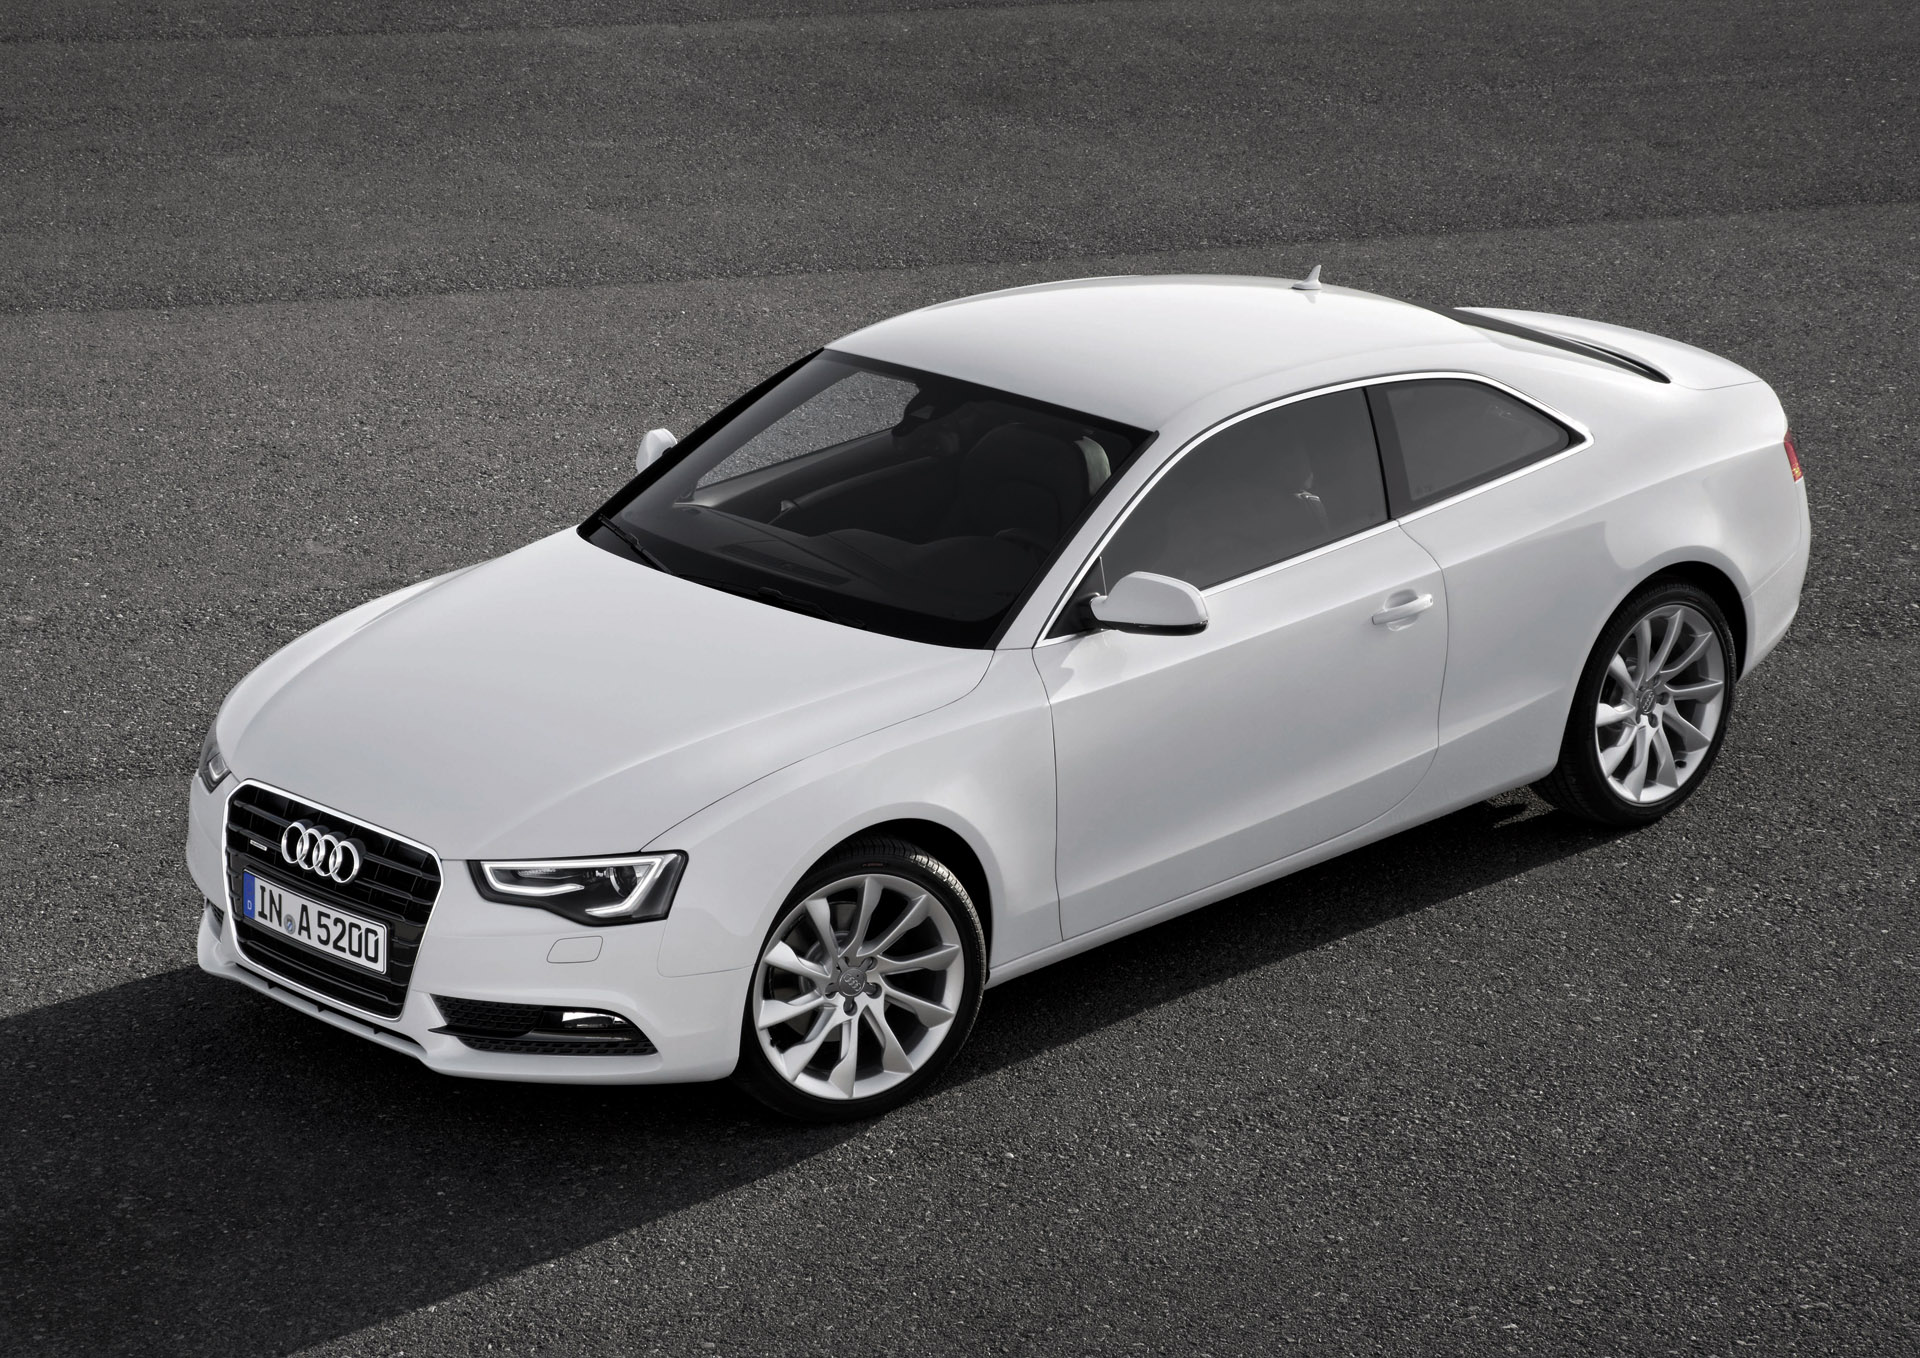 2012 Audi A5 High Resolution Wallpapers Forcegt Com